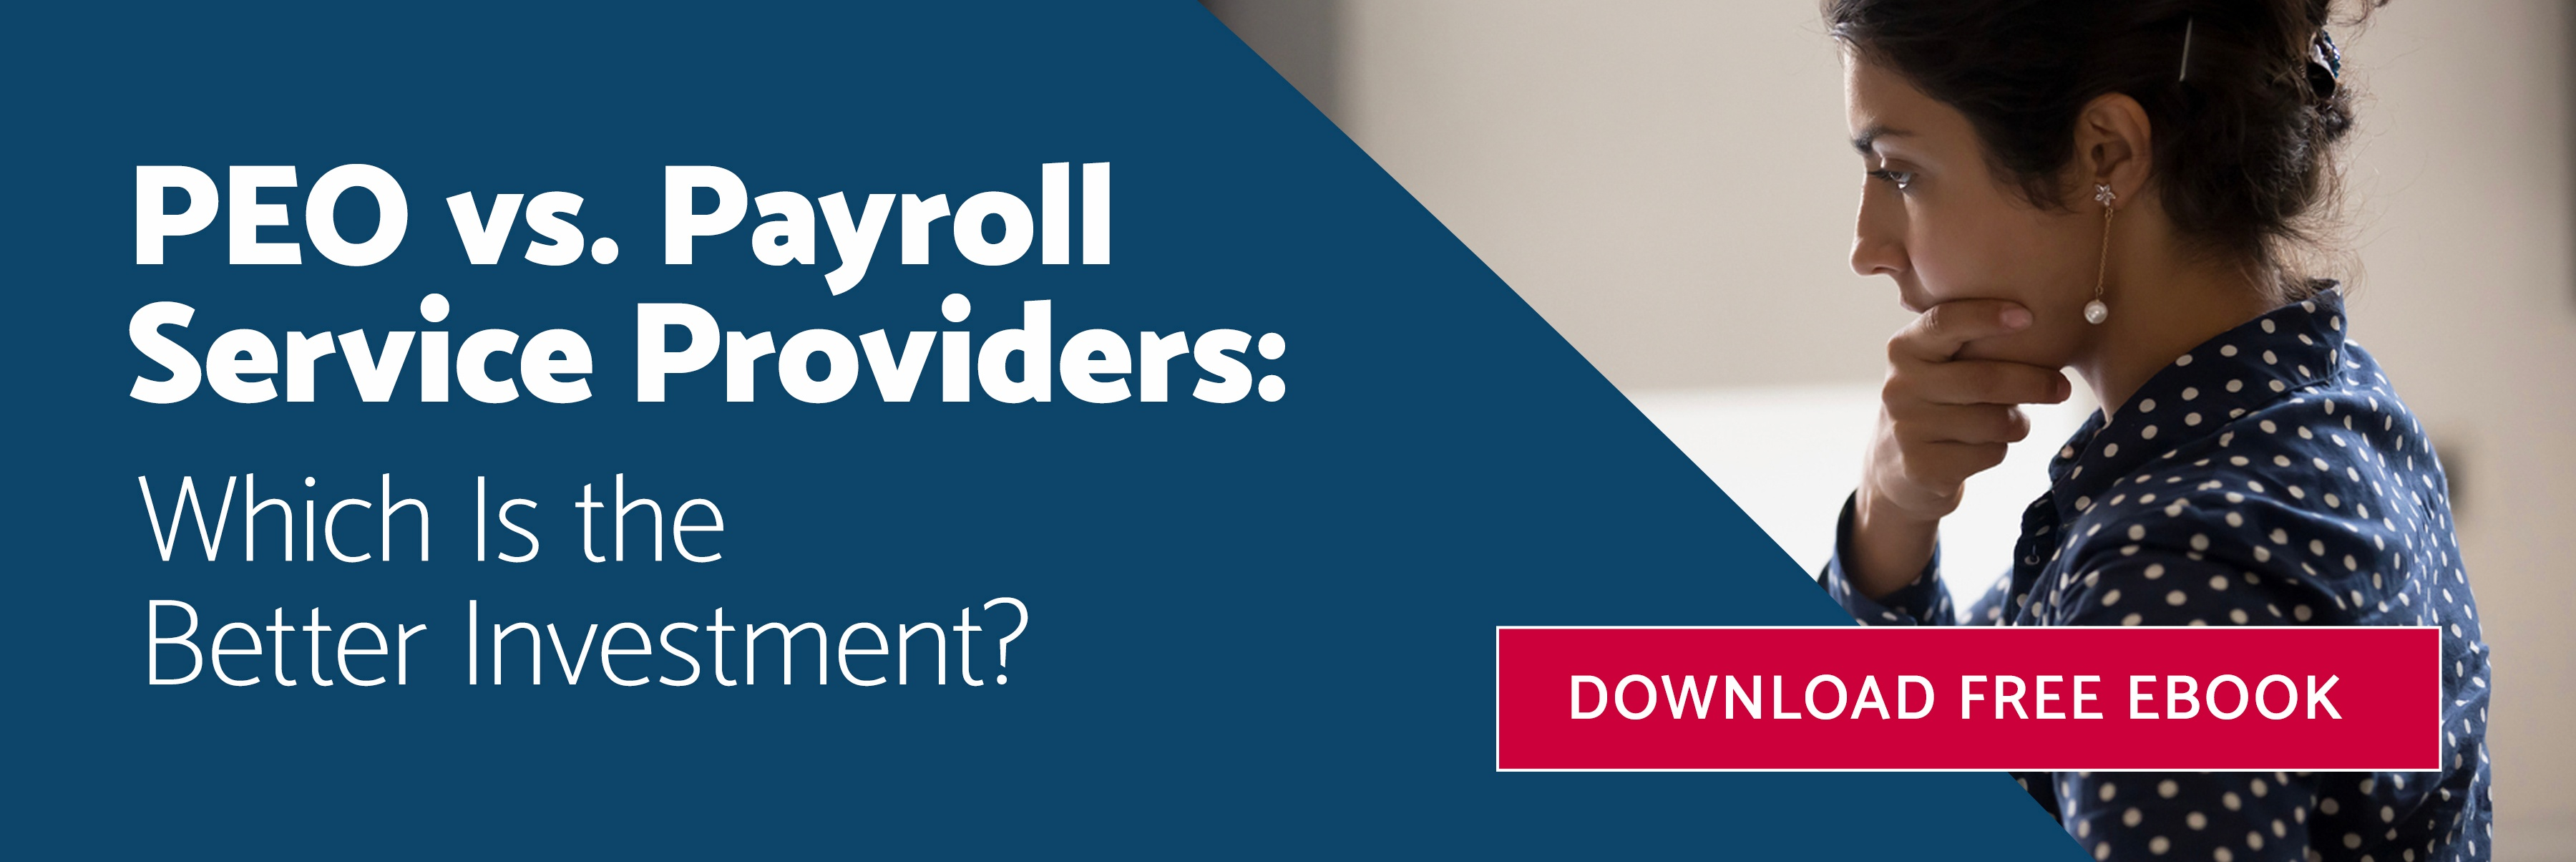 PEO vs. Payroll Service Providers: Which Is the Better Investment?